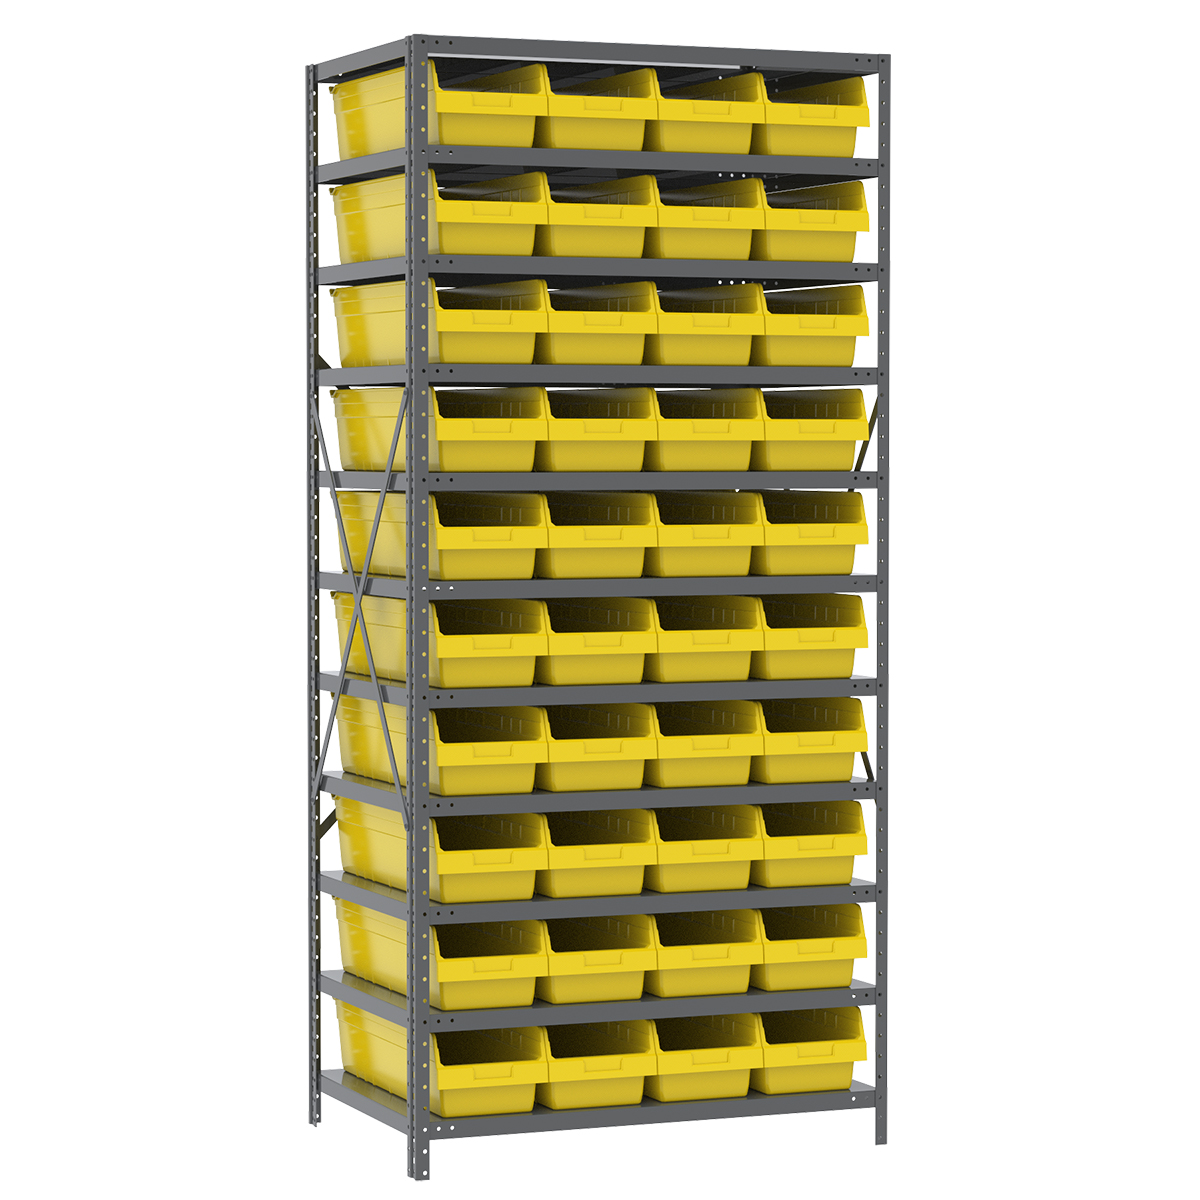 Steel Shelving Kit, 24x36x79, 42 Bins, Gray/Yellow.  This item sold in carton quantities of 1.